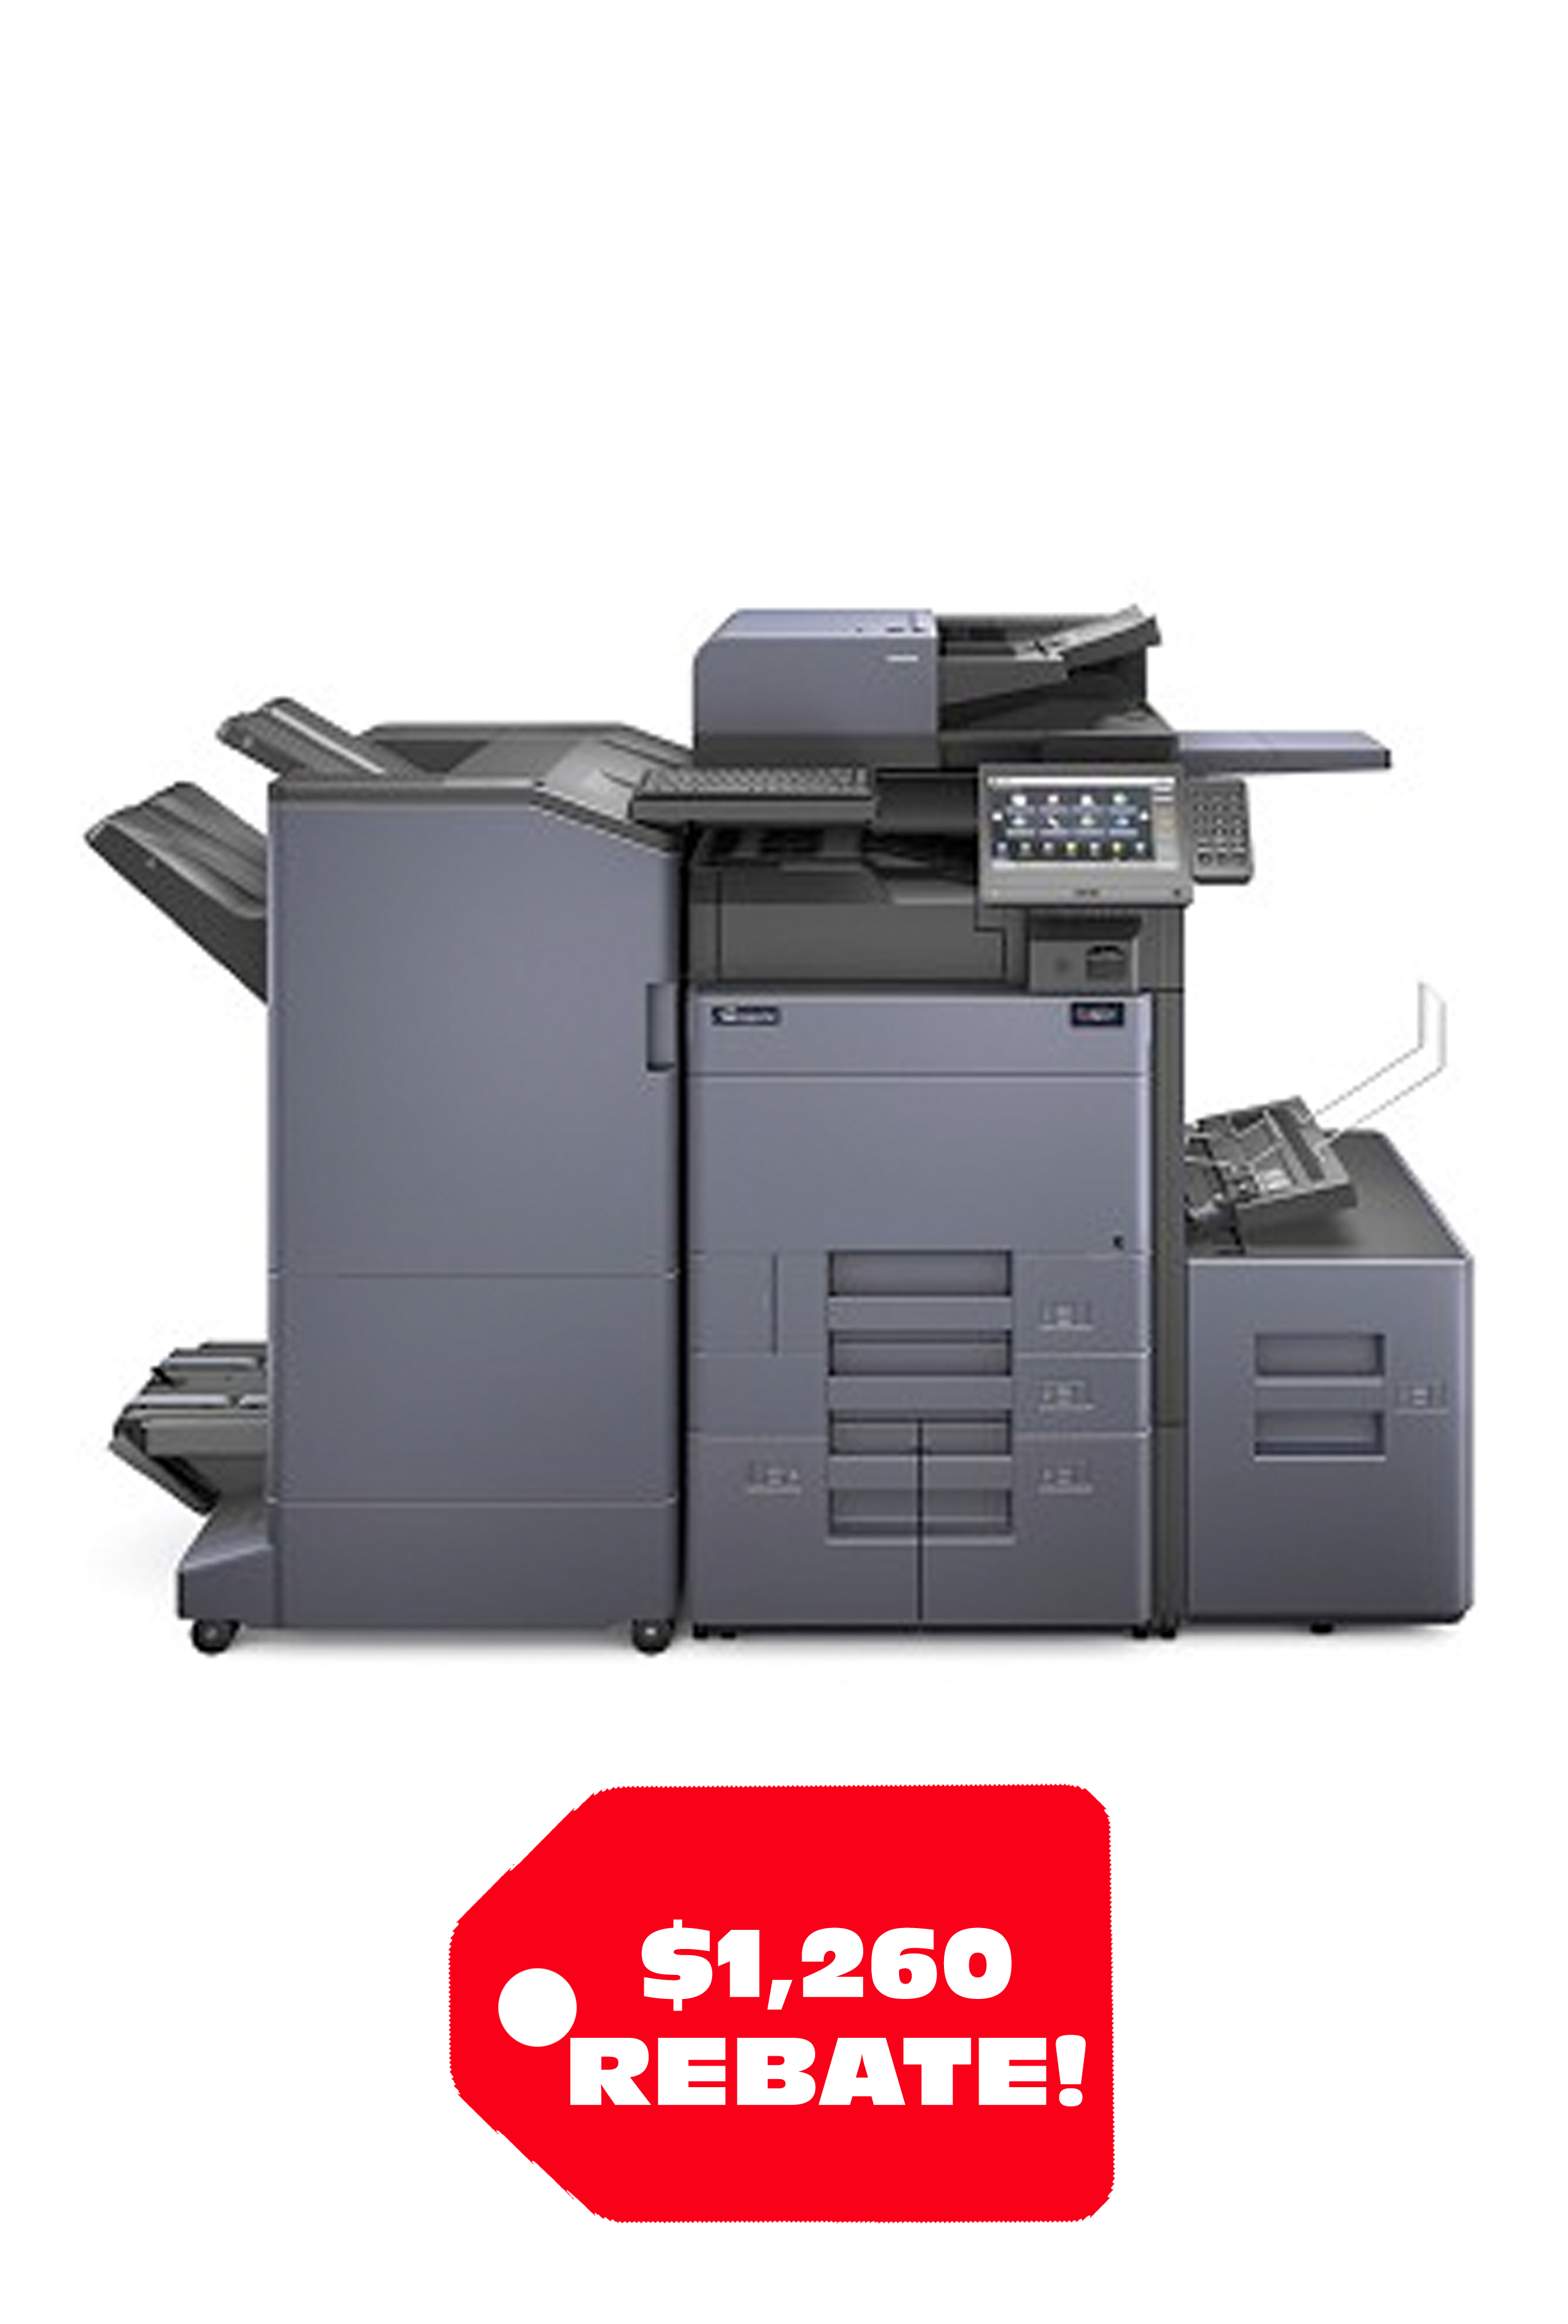 Copystar COPYSTAR CS 3553ci (35/35 PPM) A3 Color MFP